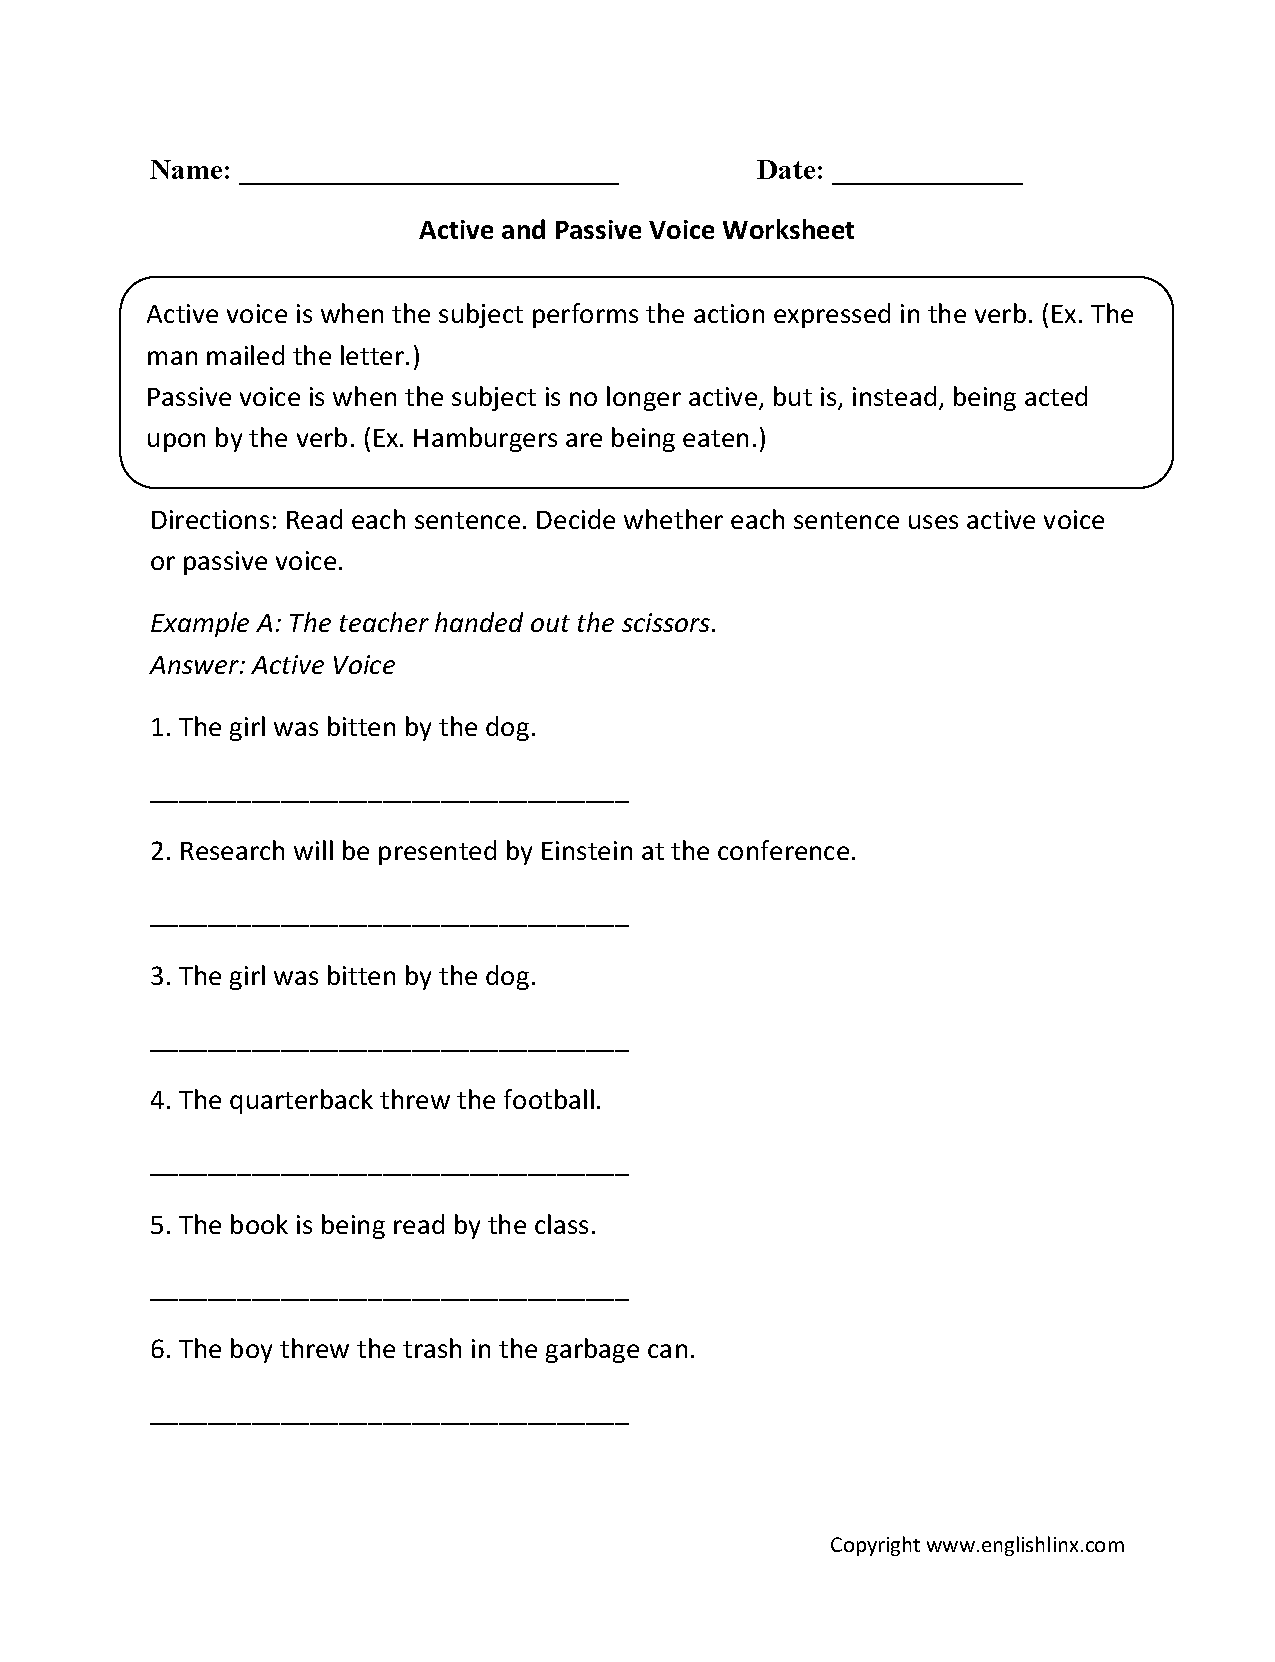 Worksheets Active Reading Strategies Worksheet active and passive voice worksheet over pinterest this is the worksheets section when subject performs action expressed in verb